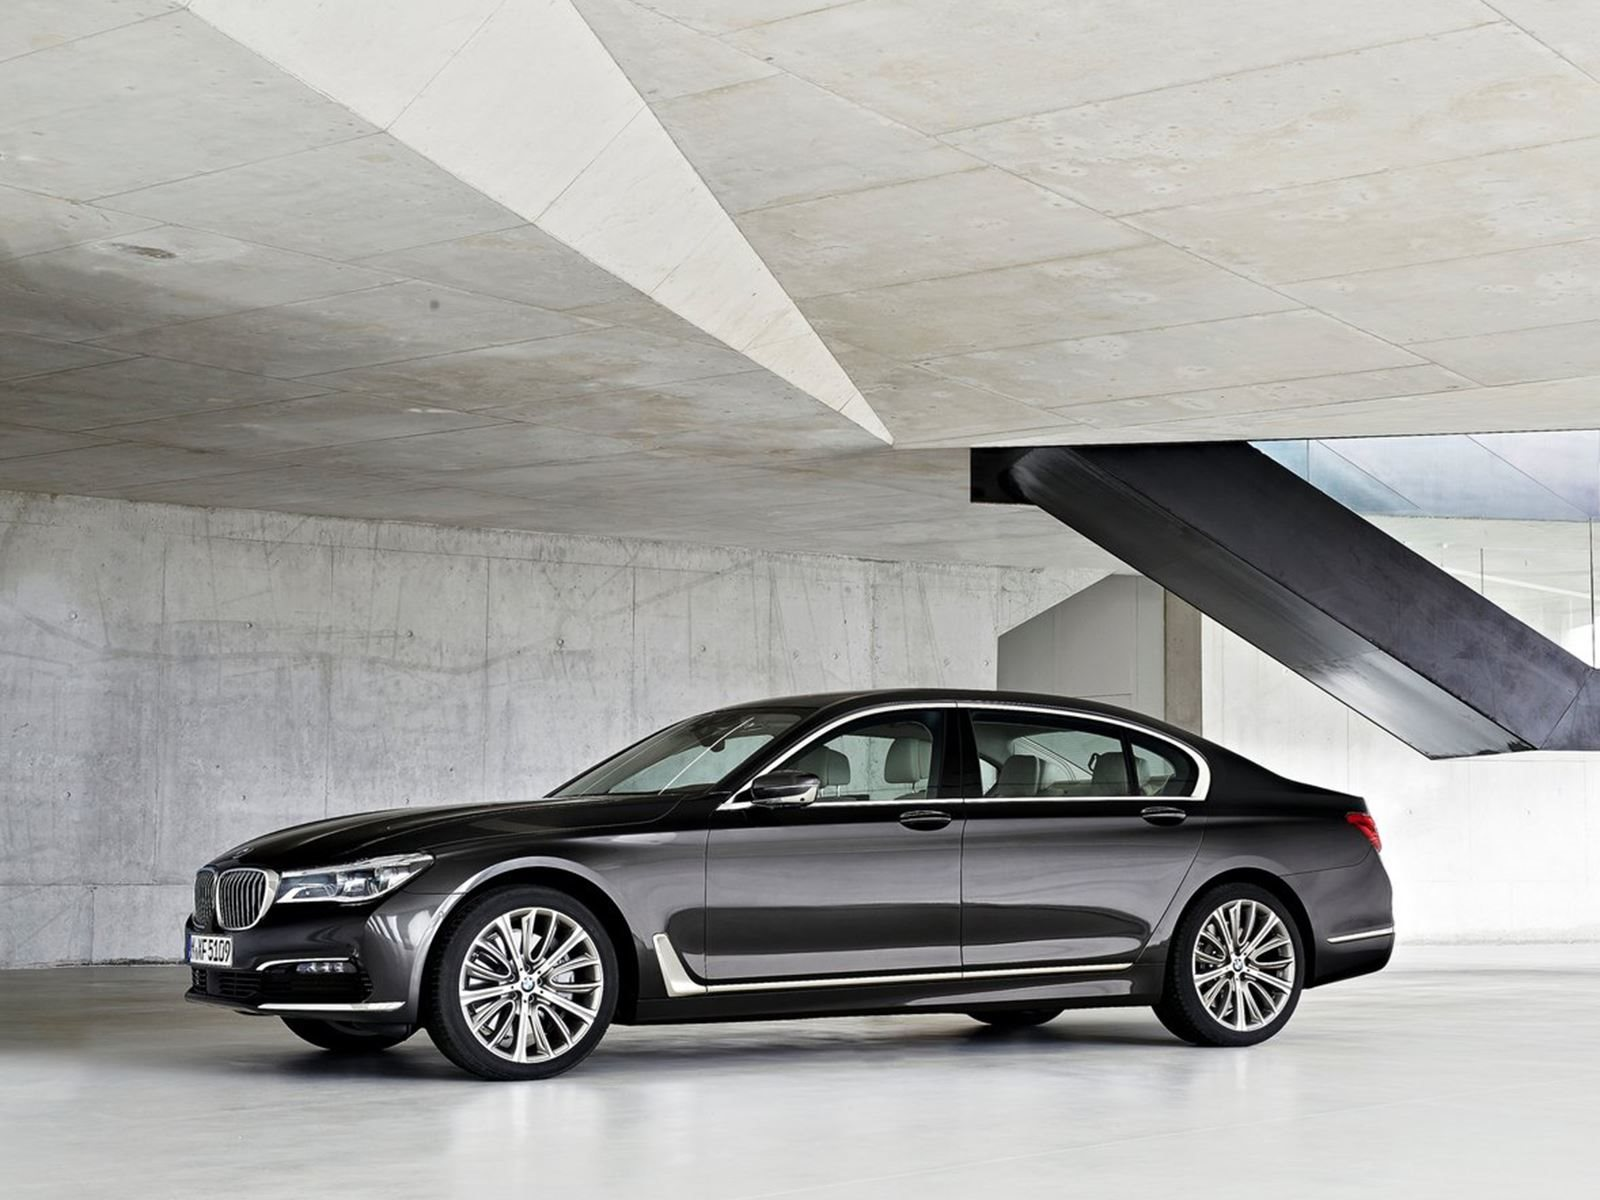 86 The Best 2019 BMW 750Li Images